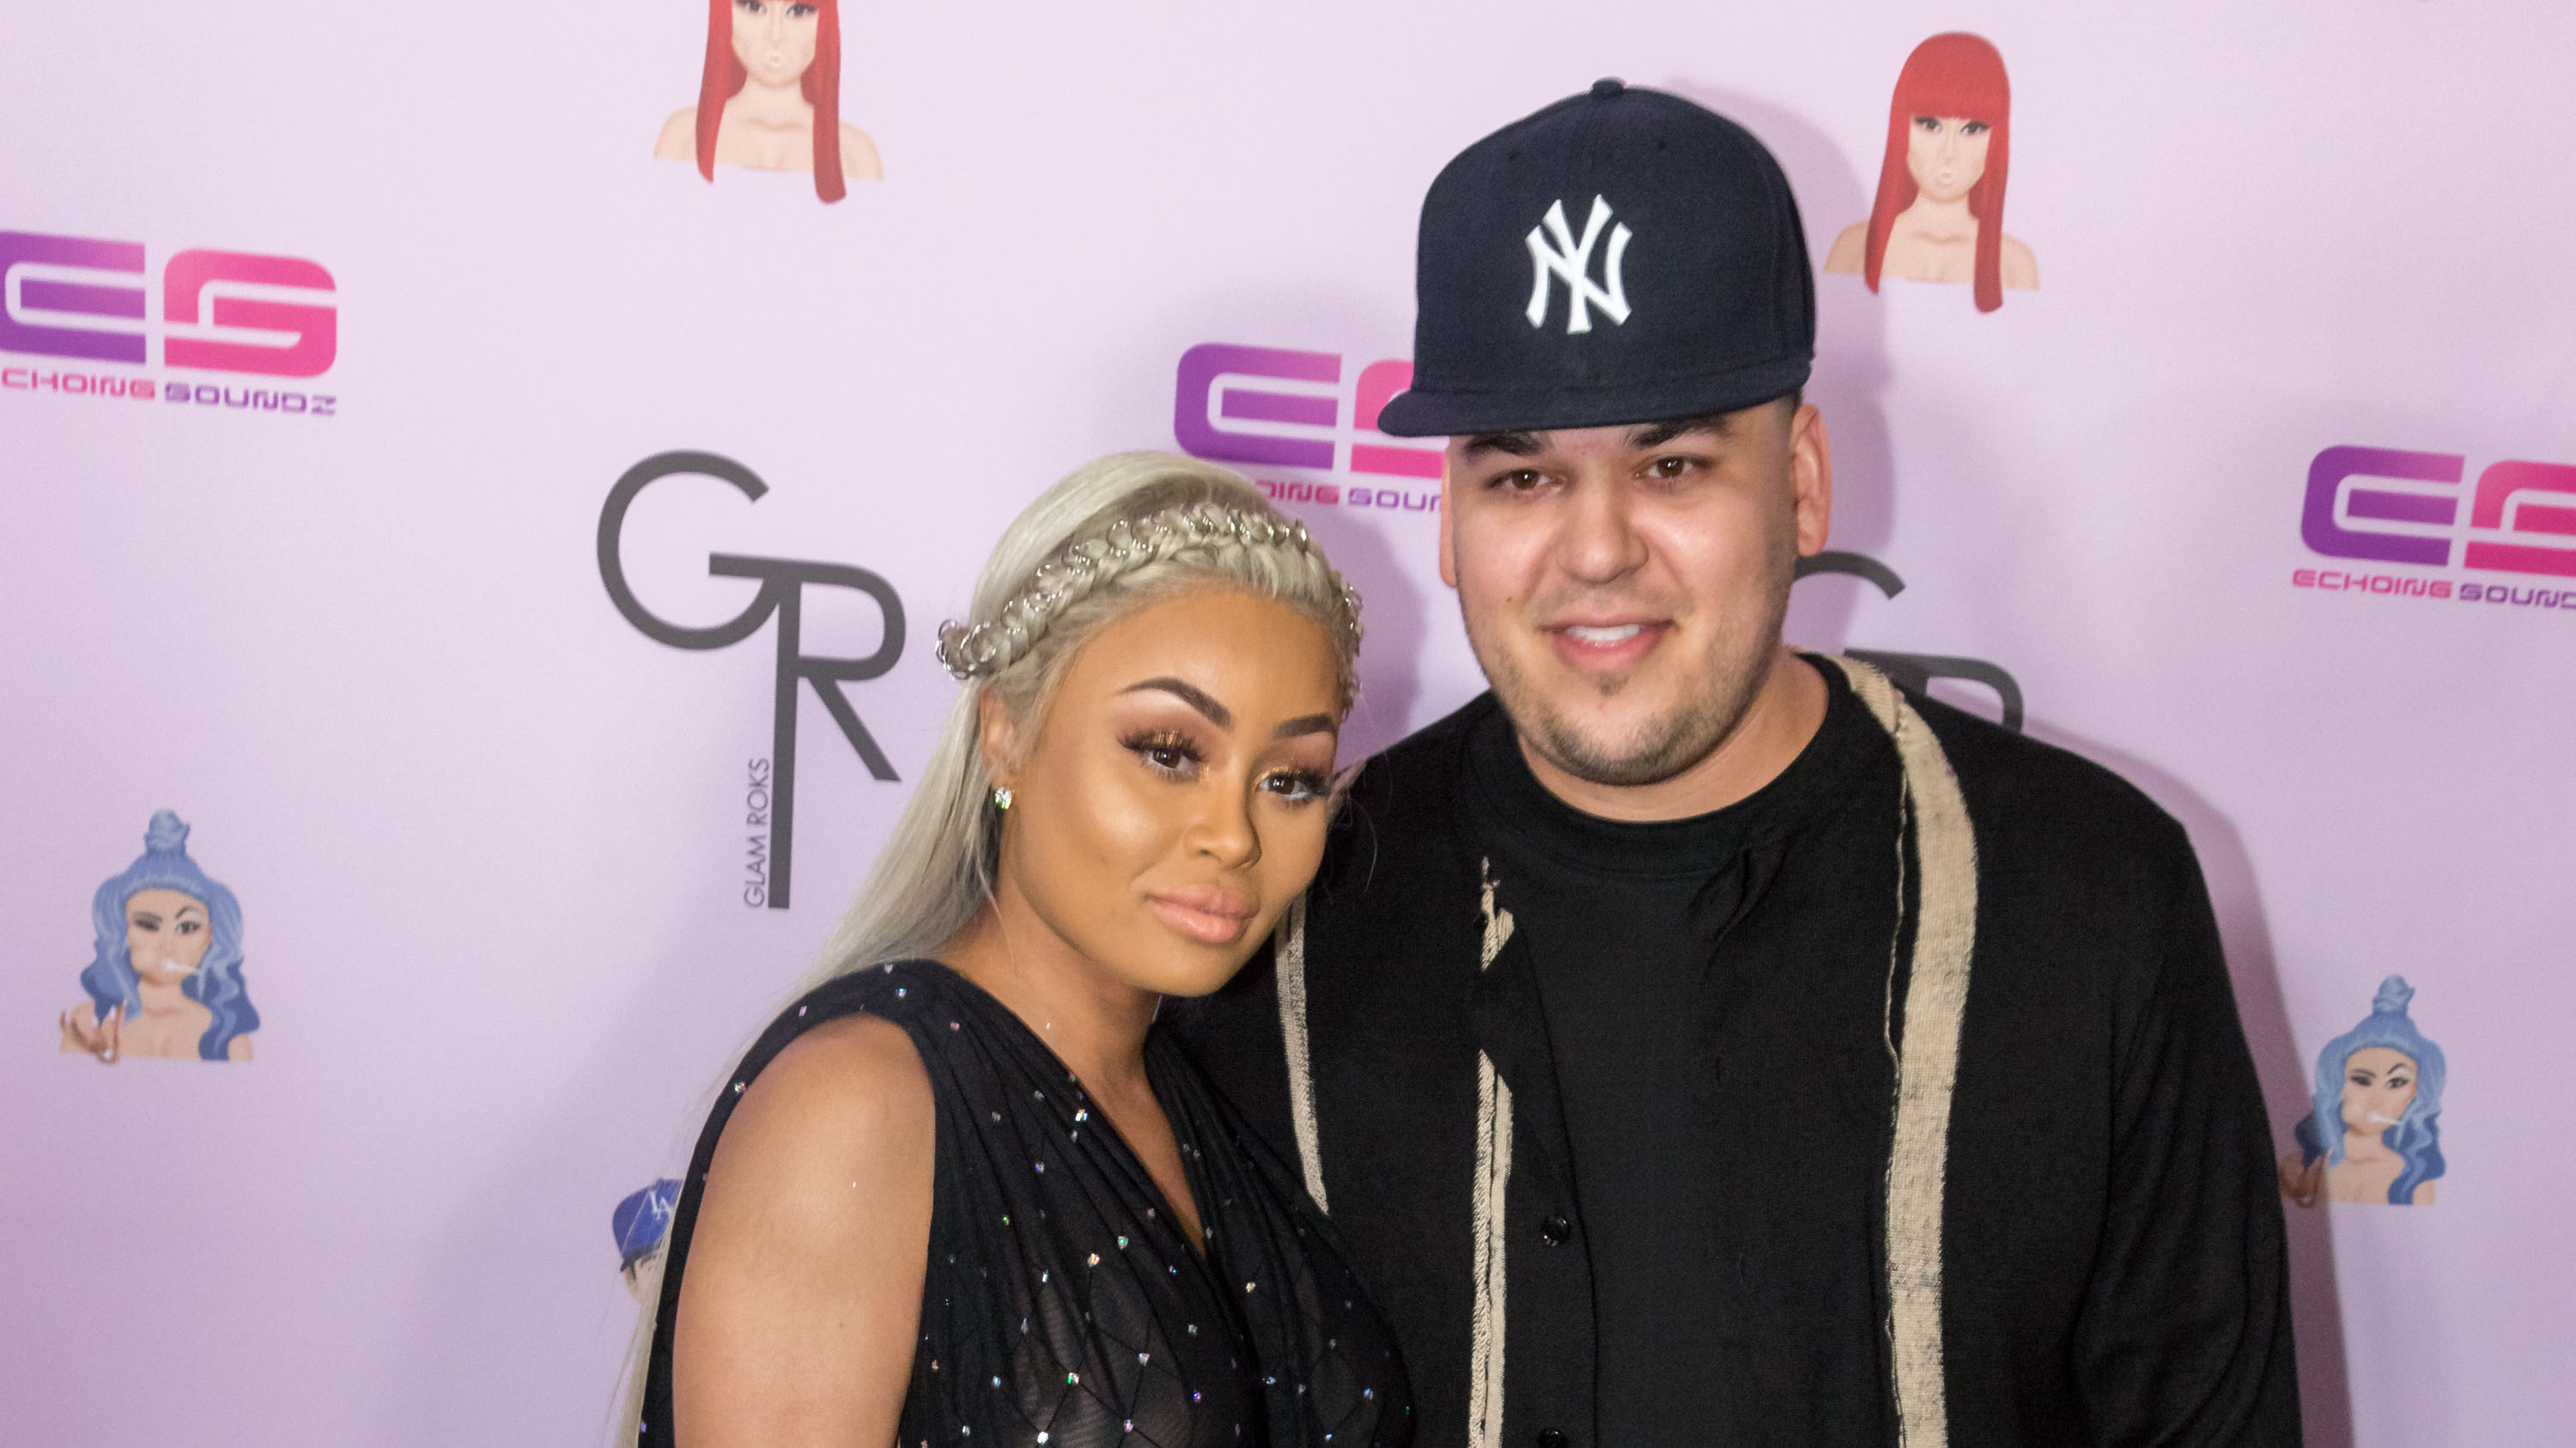 Rob Kardashian's ex Blac Chyna and new flame Alexis Skyy share heated words